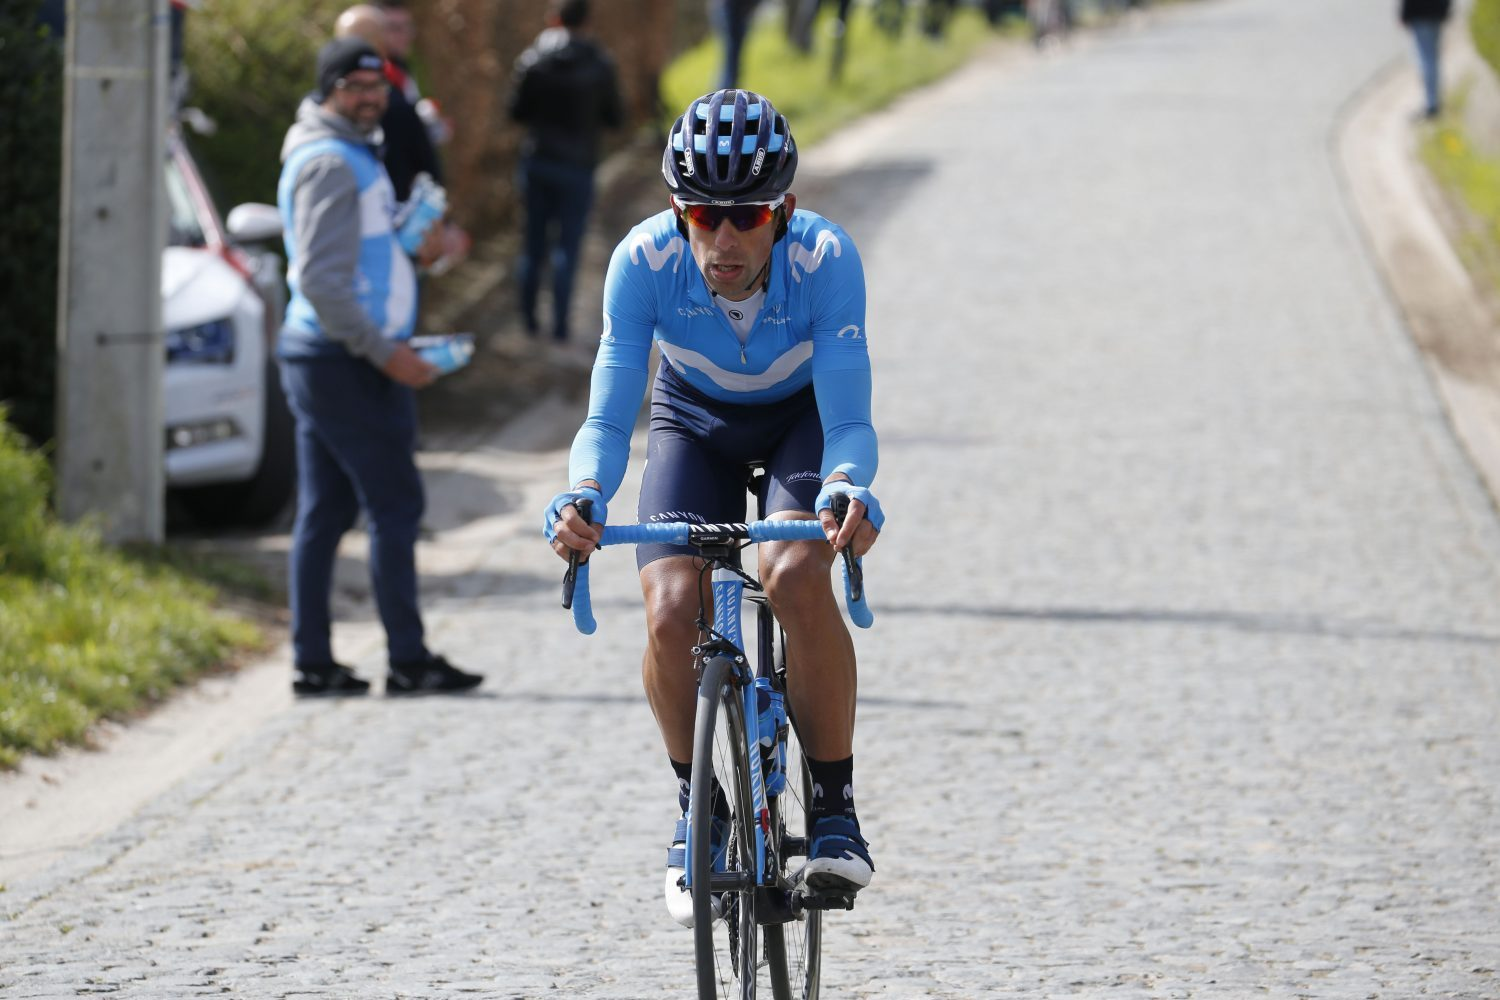 Confusion as Movistar rider denies being disqualified from Tour of Flanders